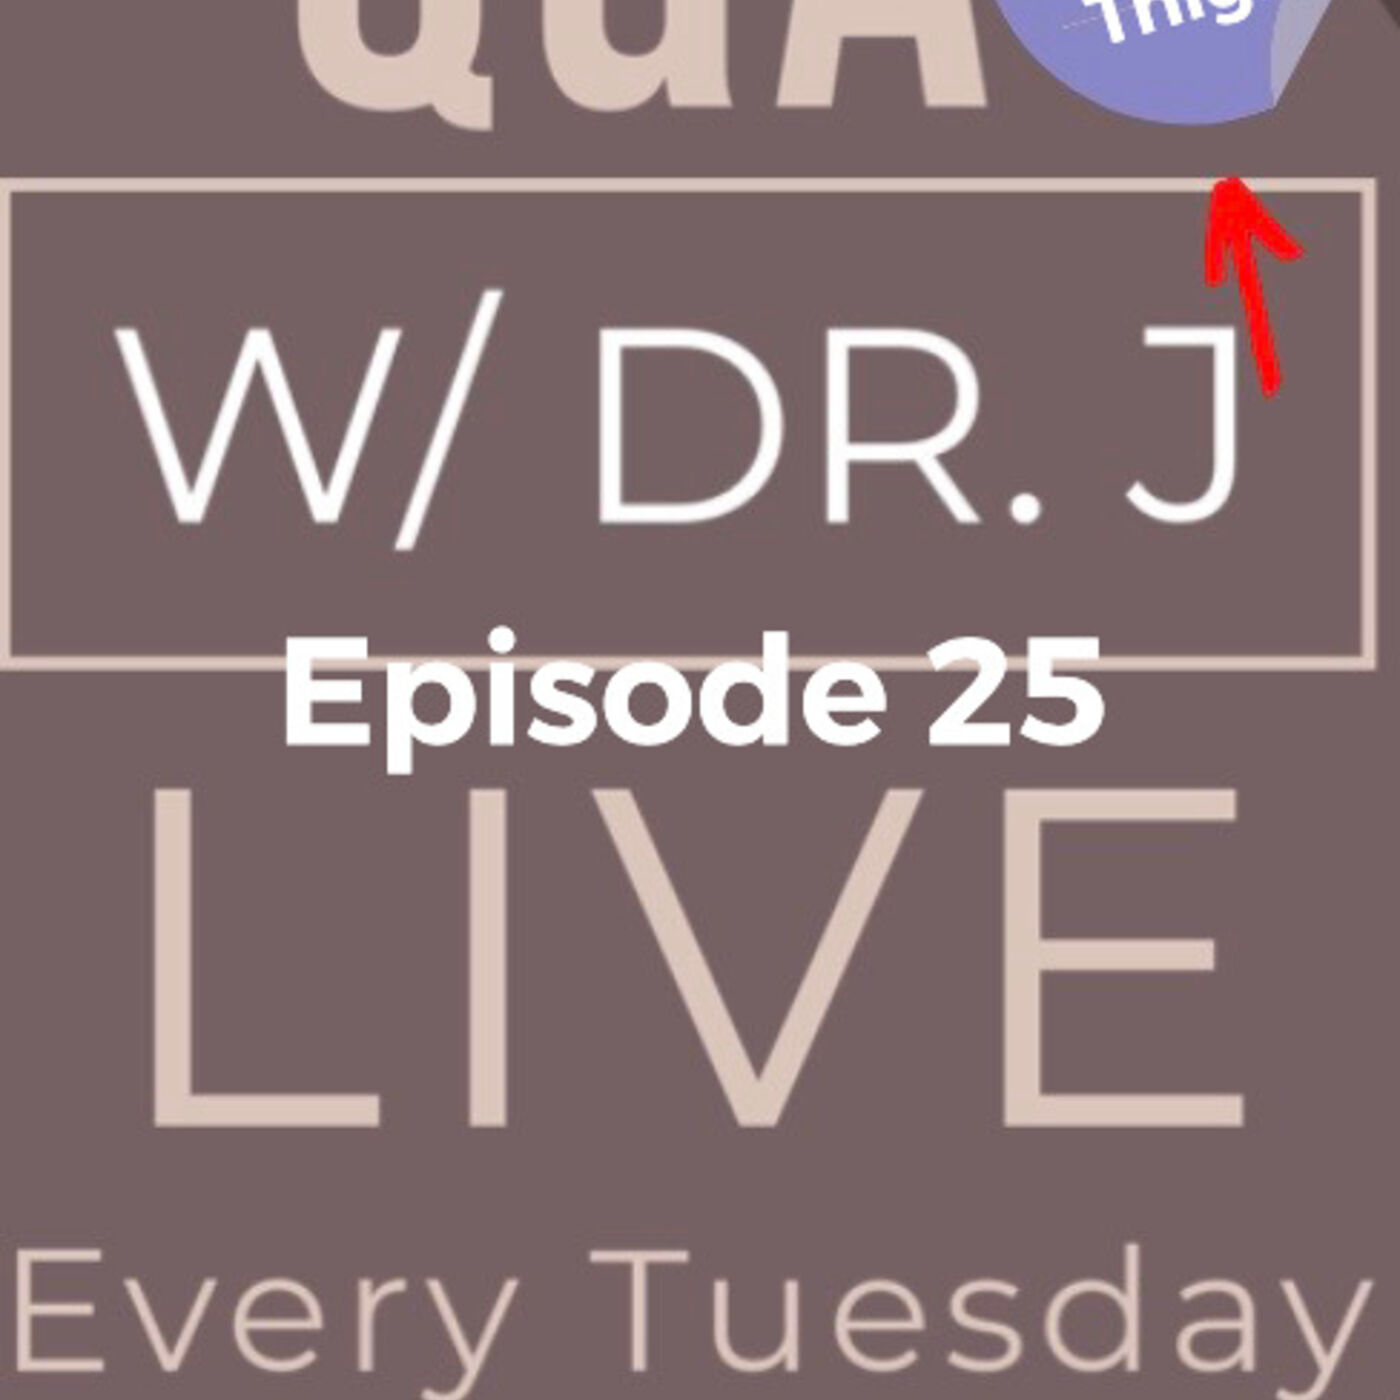 EP 25 Q&A w/ Dr J - All about thighs with Dr. Jeneby